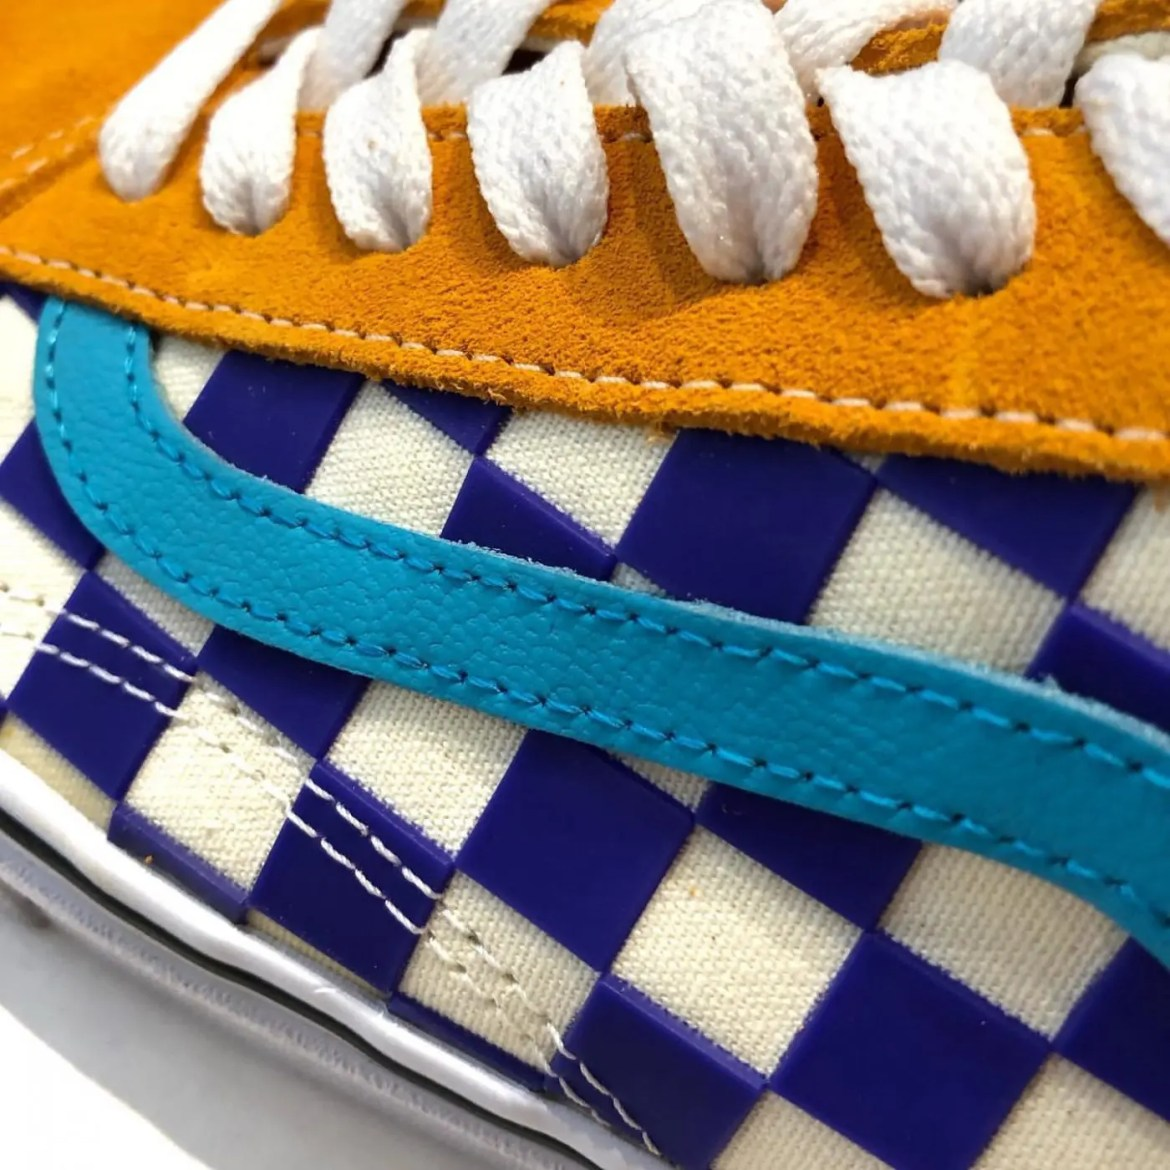 vans-thermochromic-pack-02